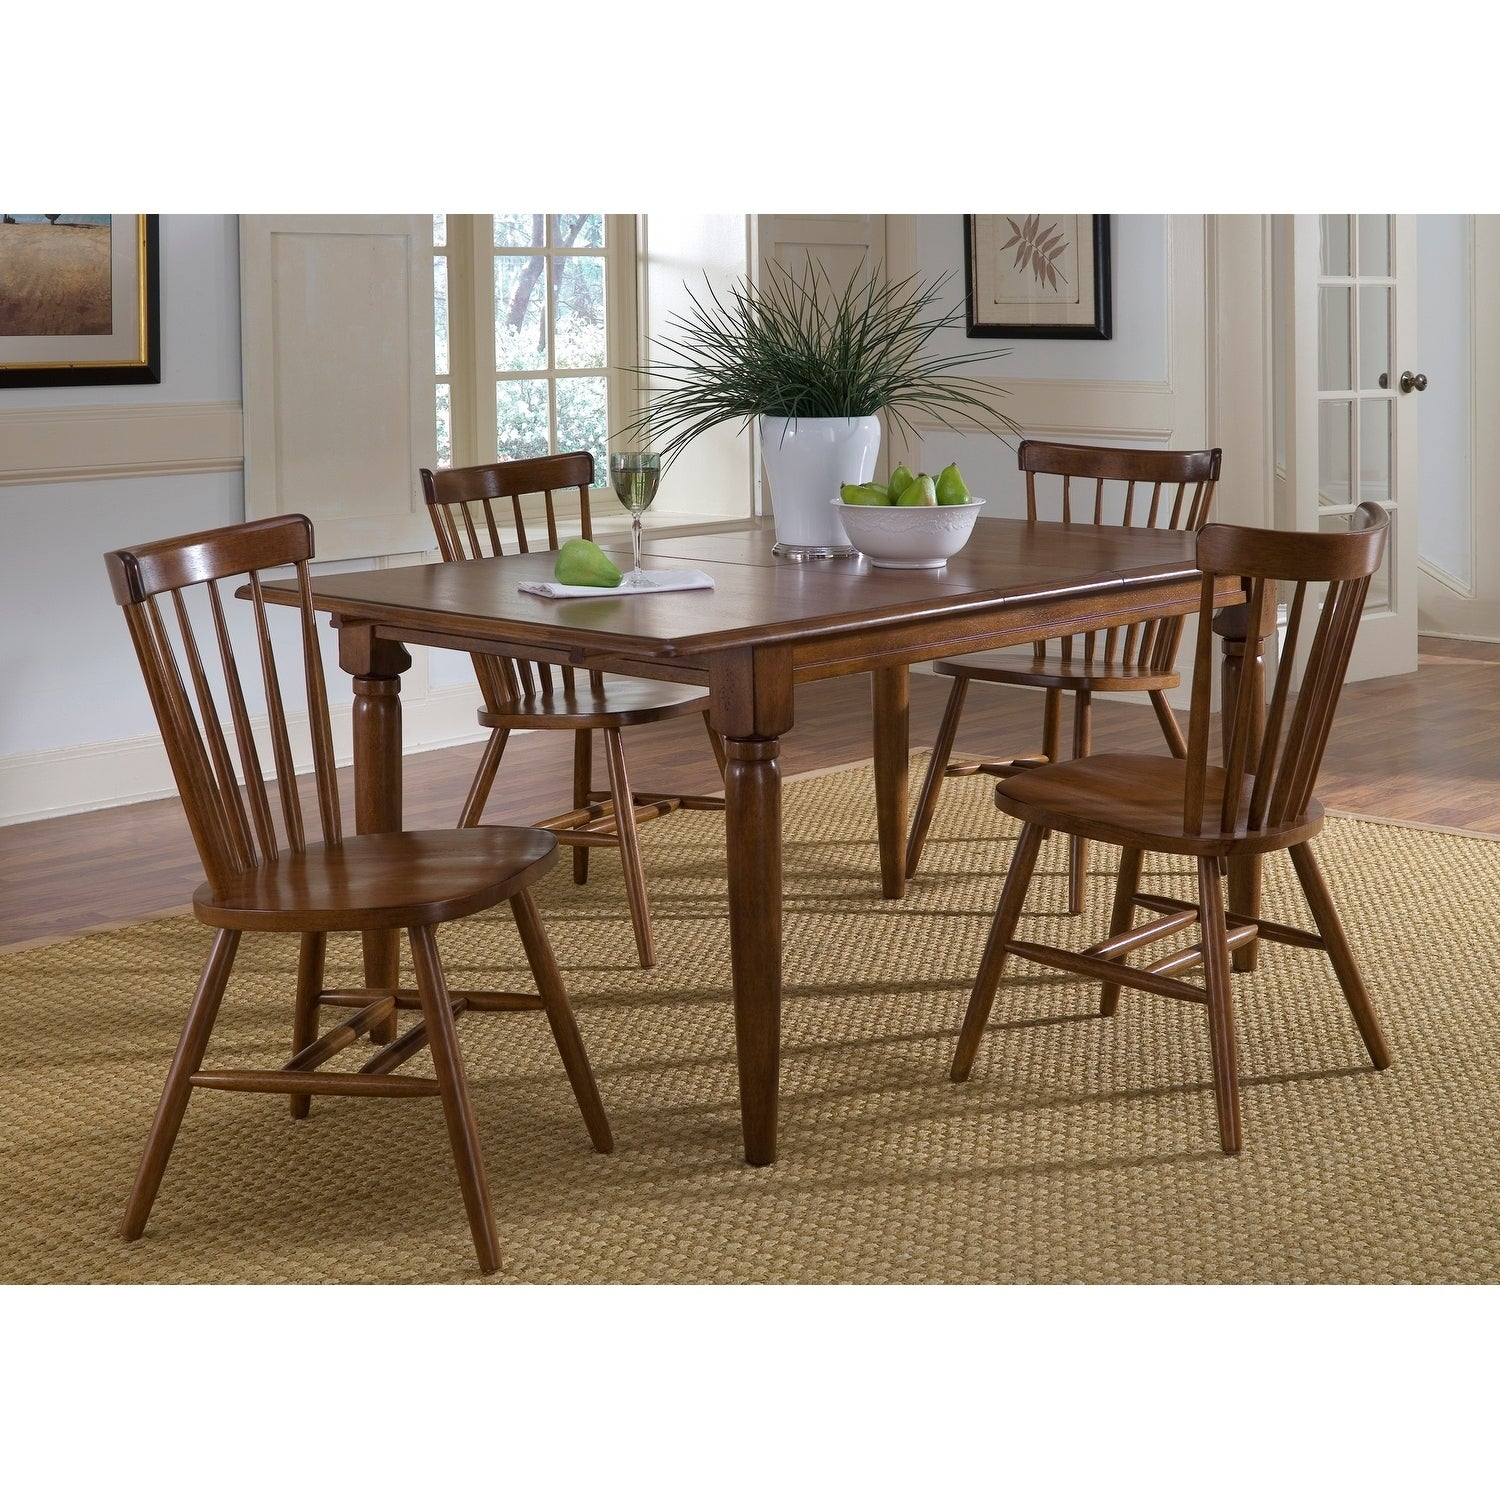 Creations II Tobacco Brown Butterfly Leaf Dining Table Free